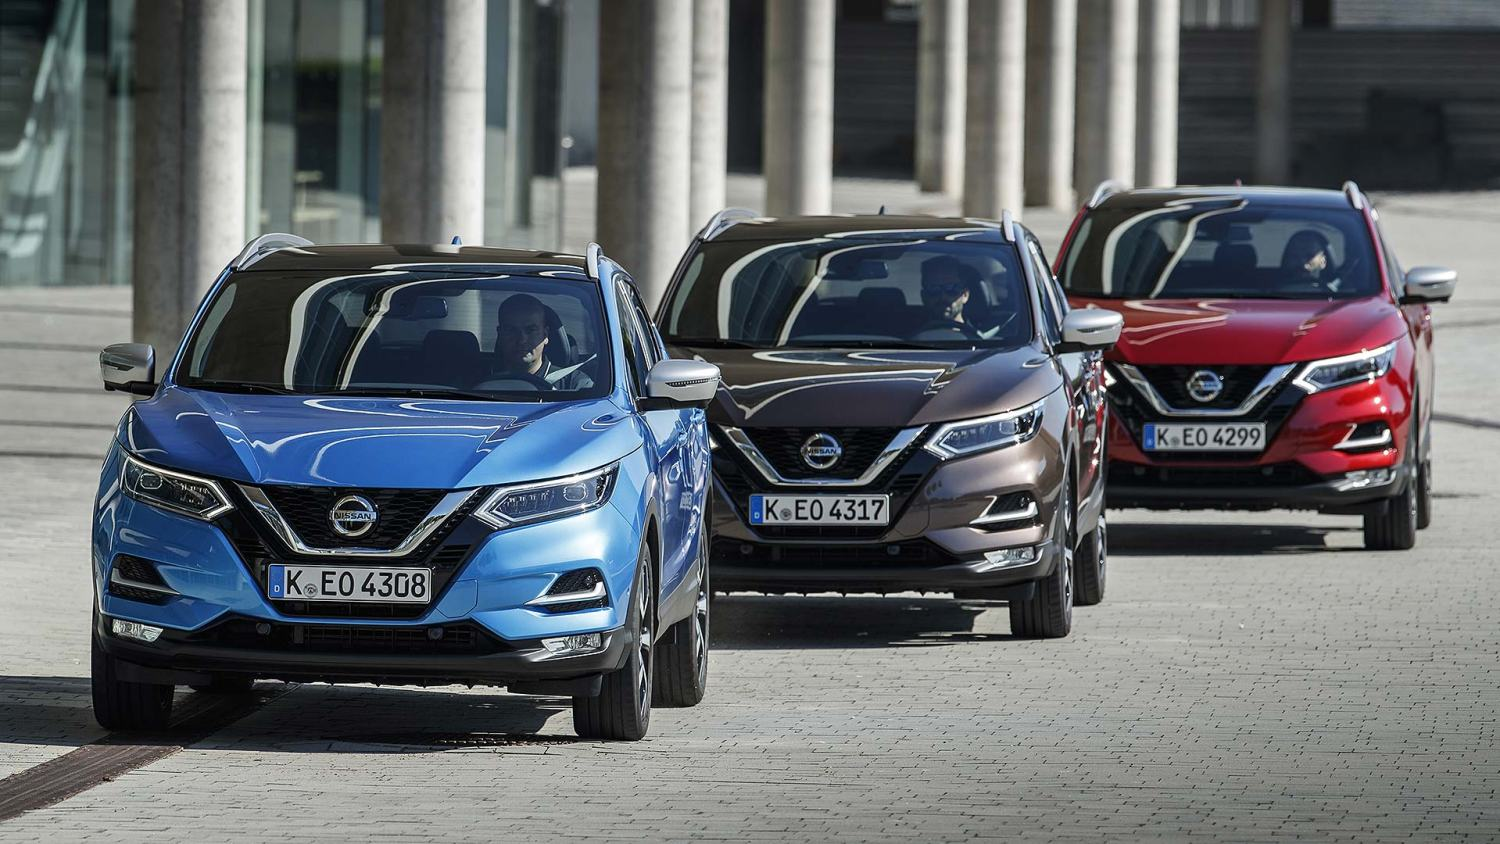 nissan qashqai moves a step closer to being a self